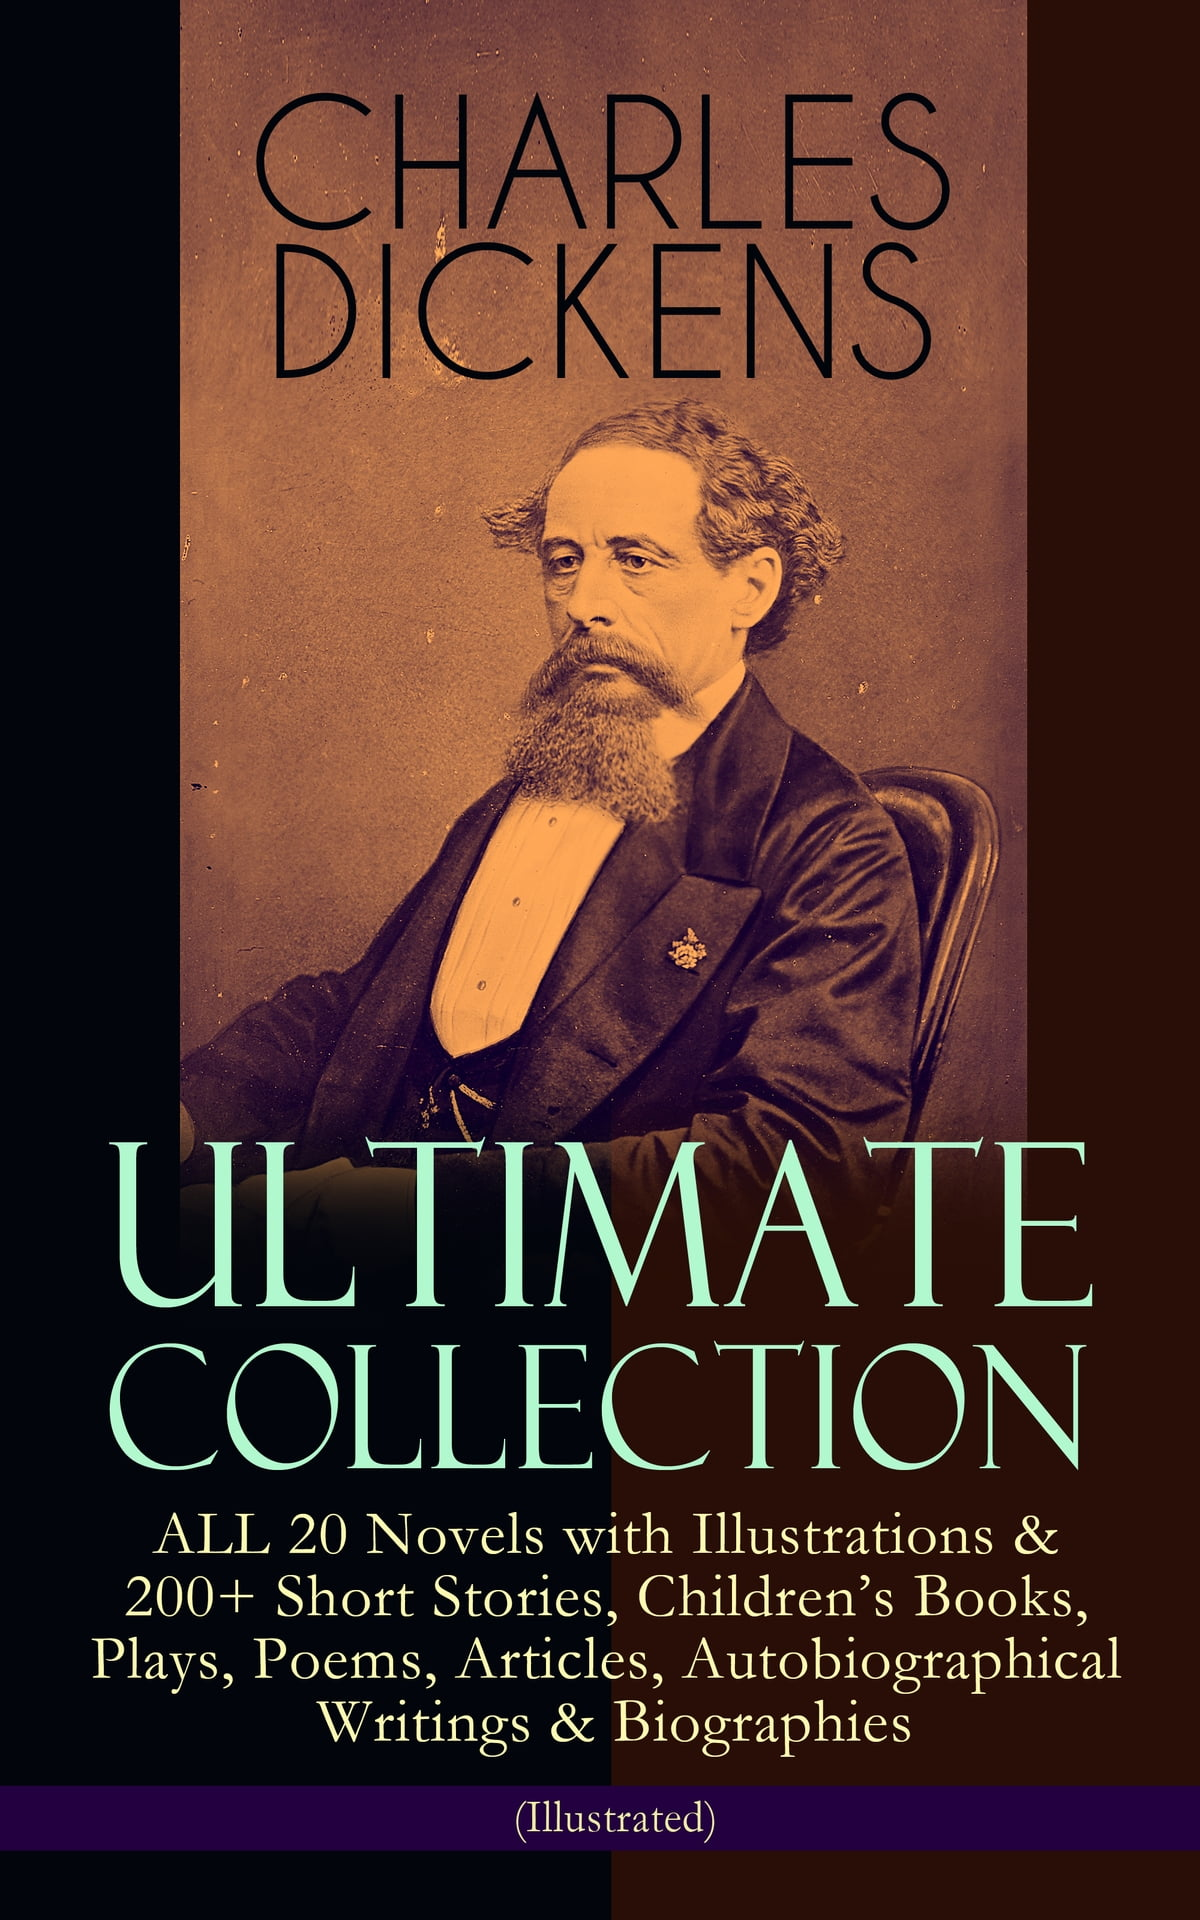 Charles Dickens Ultimate Collection All 20 Novels With